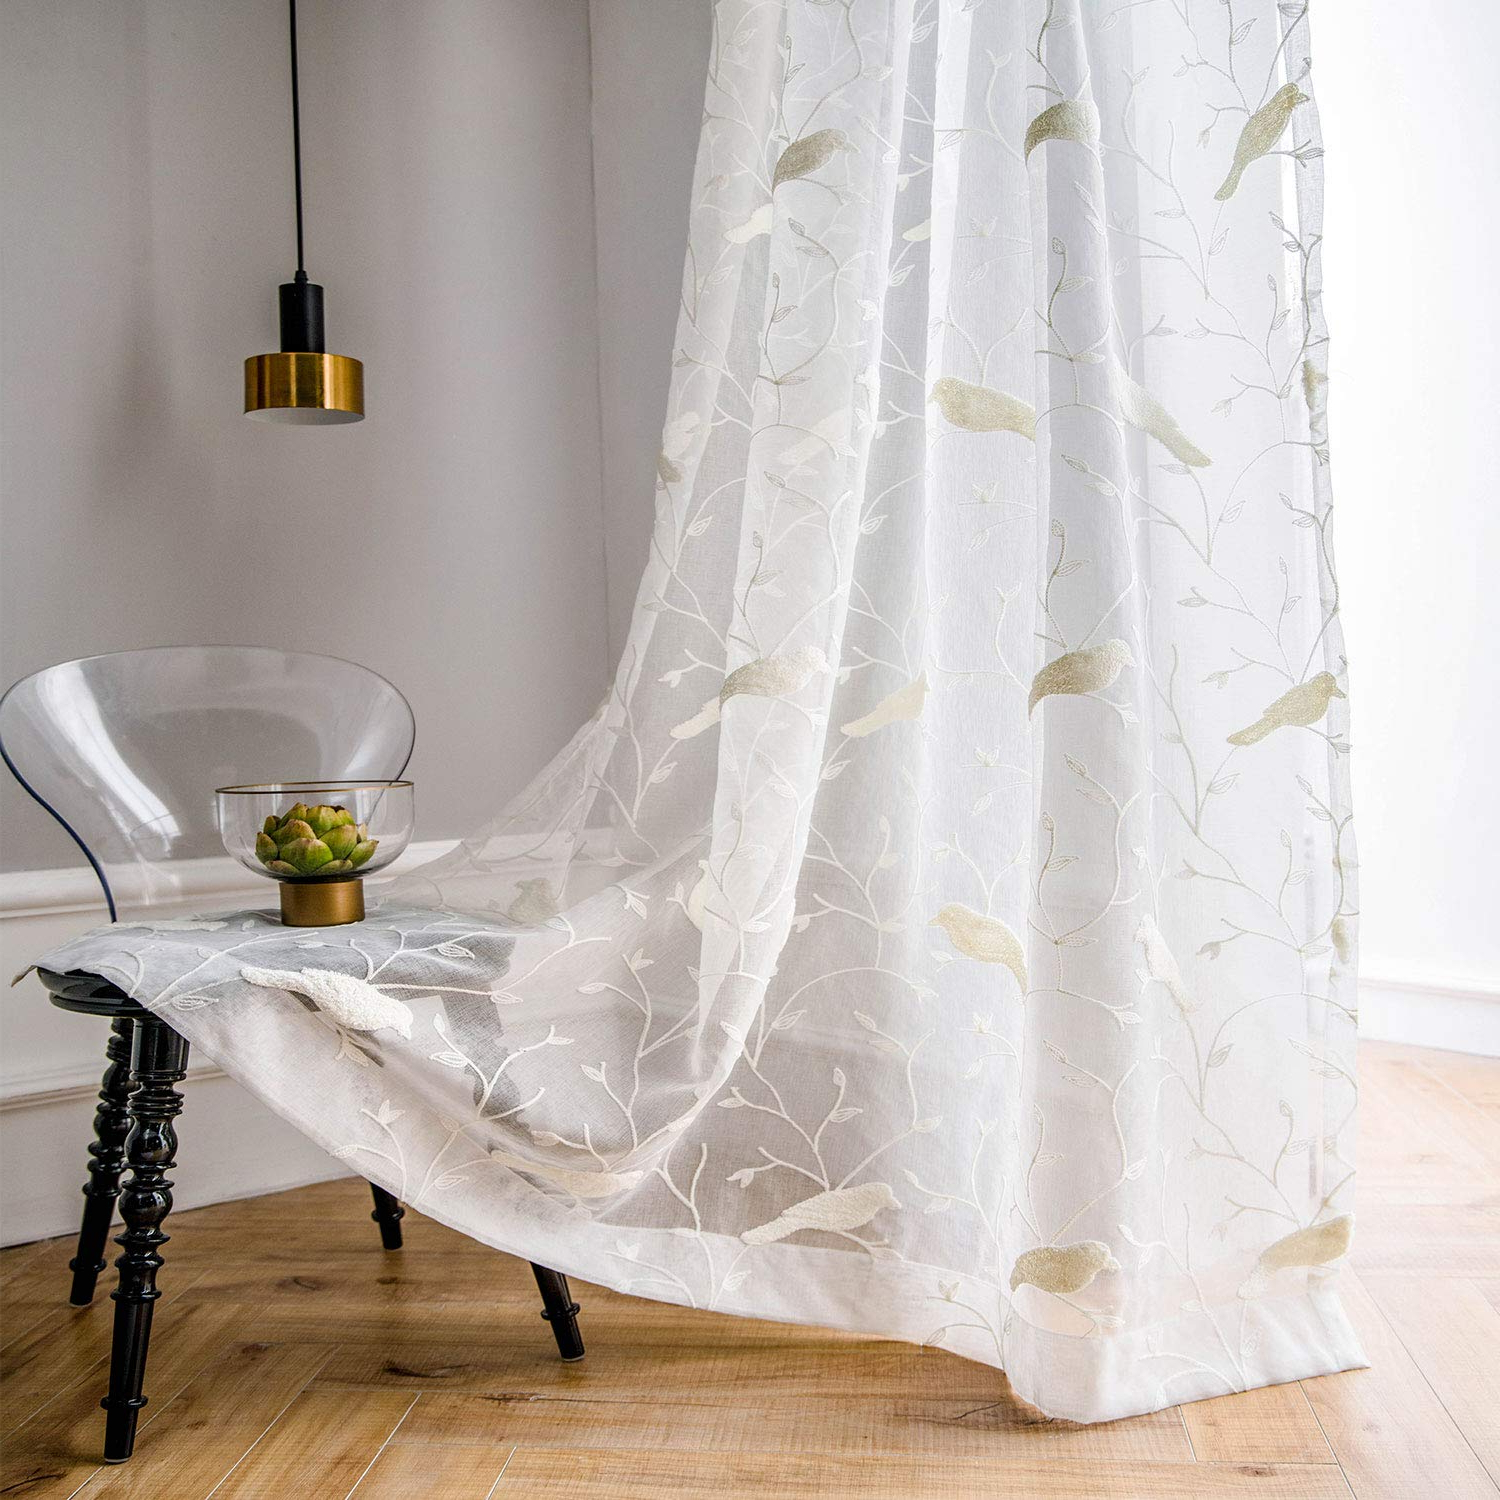 Ivory Knit Lace Bird Motif Window Curtain With Regard To Well Known White Rod Pocket Sheer Curtains 96 Inches Length, Birds Embroidered Window Curtain Sheer Voile Panels For Living Room & Bedroom, 60x96, Two Panels (View 14 of 20)